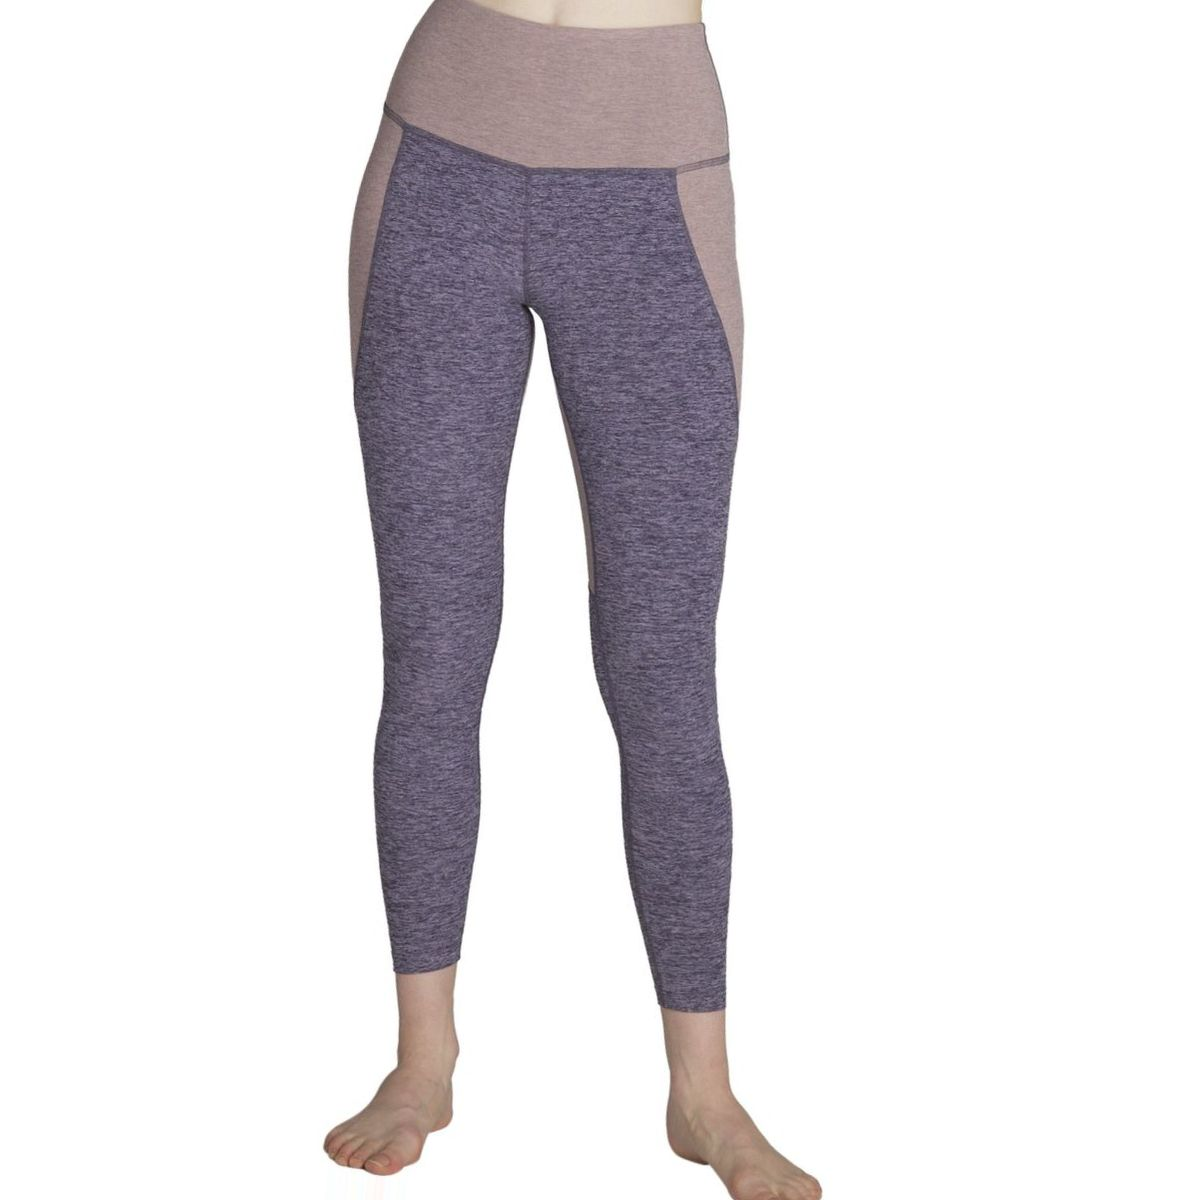 Beyond Yoga Off Duty High Waisted Legging - Women's